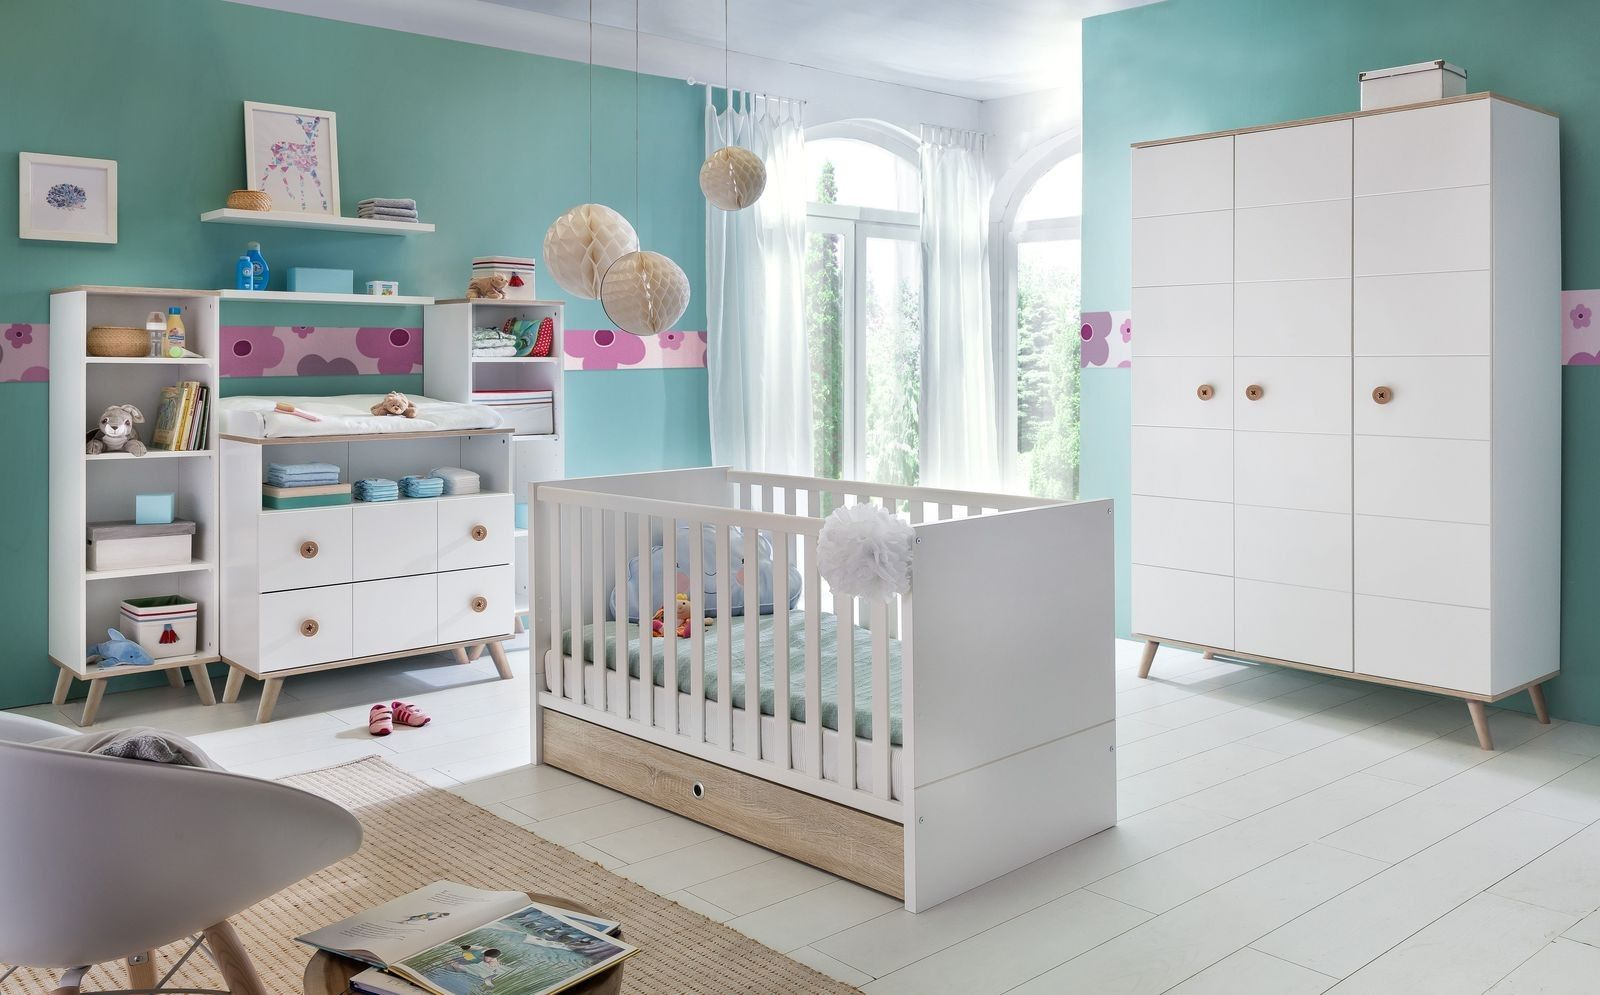 Babyzimmer Komplett Modern Now Is The Time For You To Know The Truth About Babyzimmer Komple In 2021 Childrens Bedrooms Billund Furniture